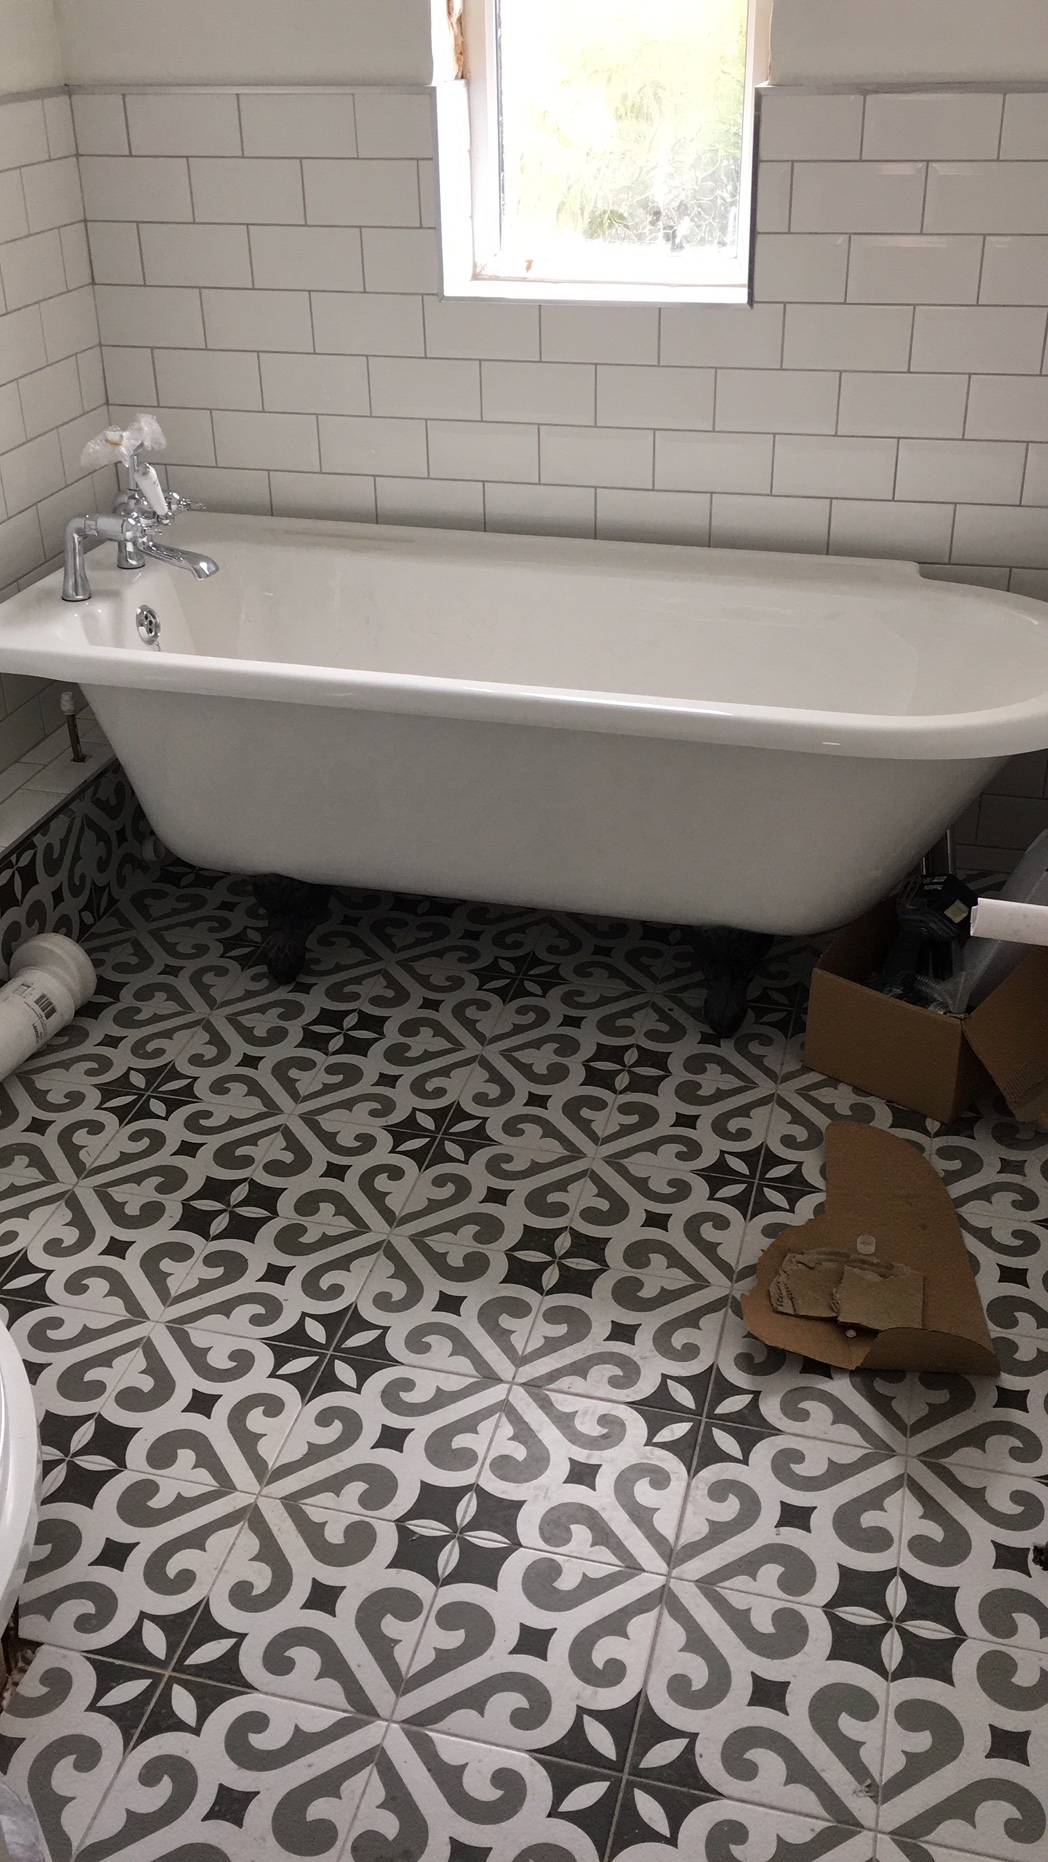 Metro tiles up and new Winchester bath going in